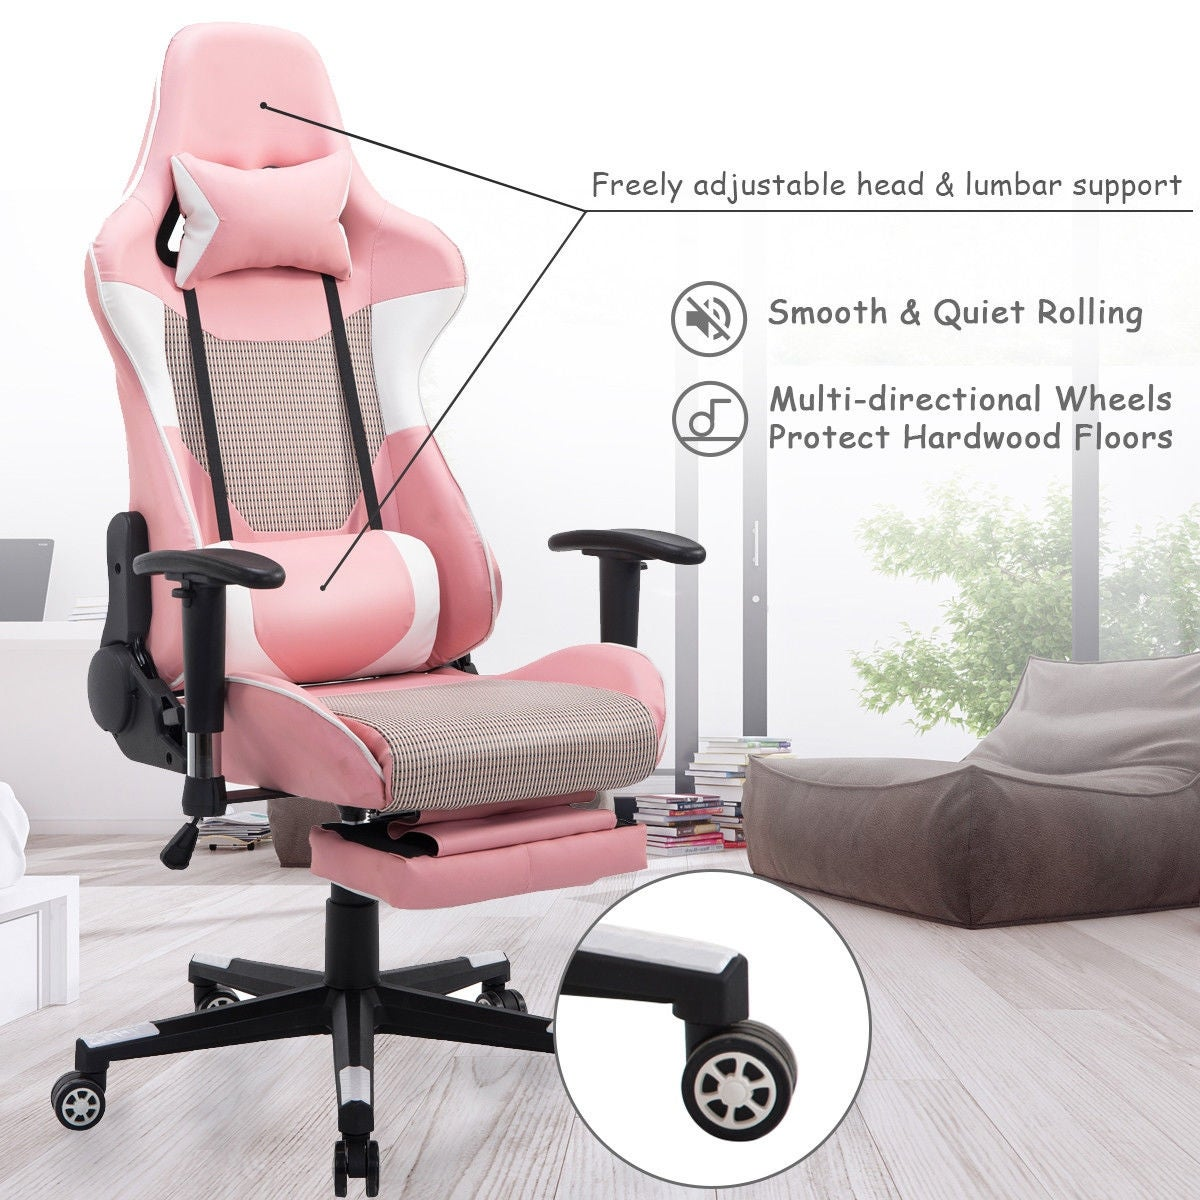 Costway Ergonomic Gaming Chair High Back Racing Office Chair W/Lumbar  Support U0026 Footrest   Free Shipping Today   Overstock   24805984